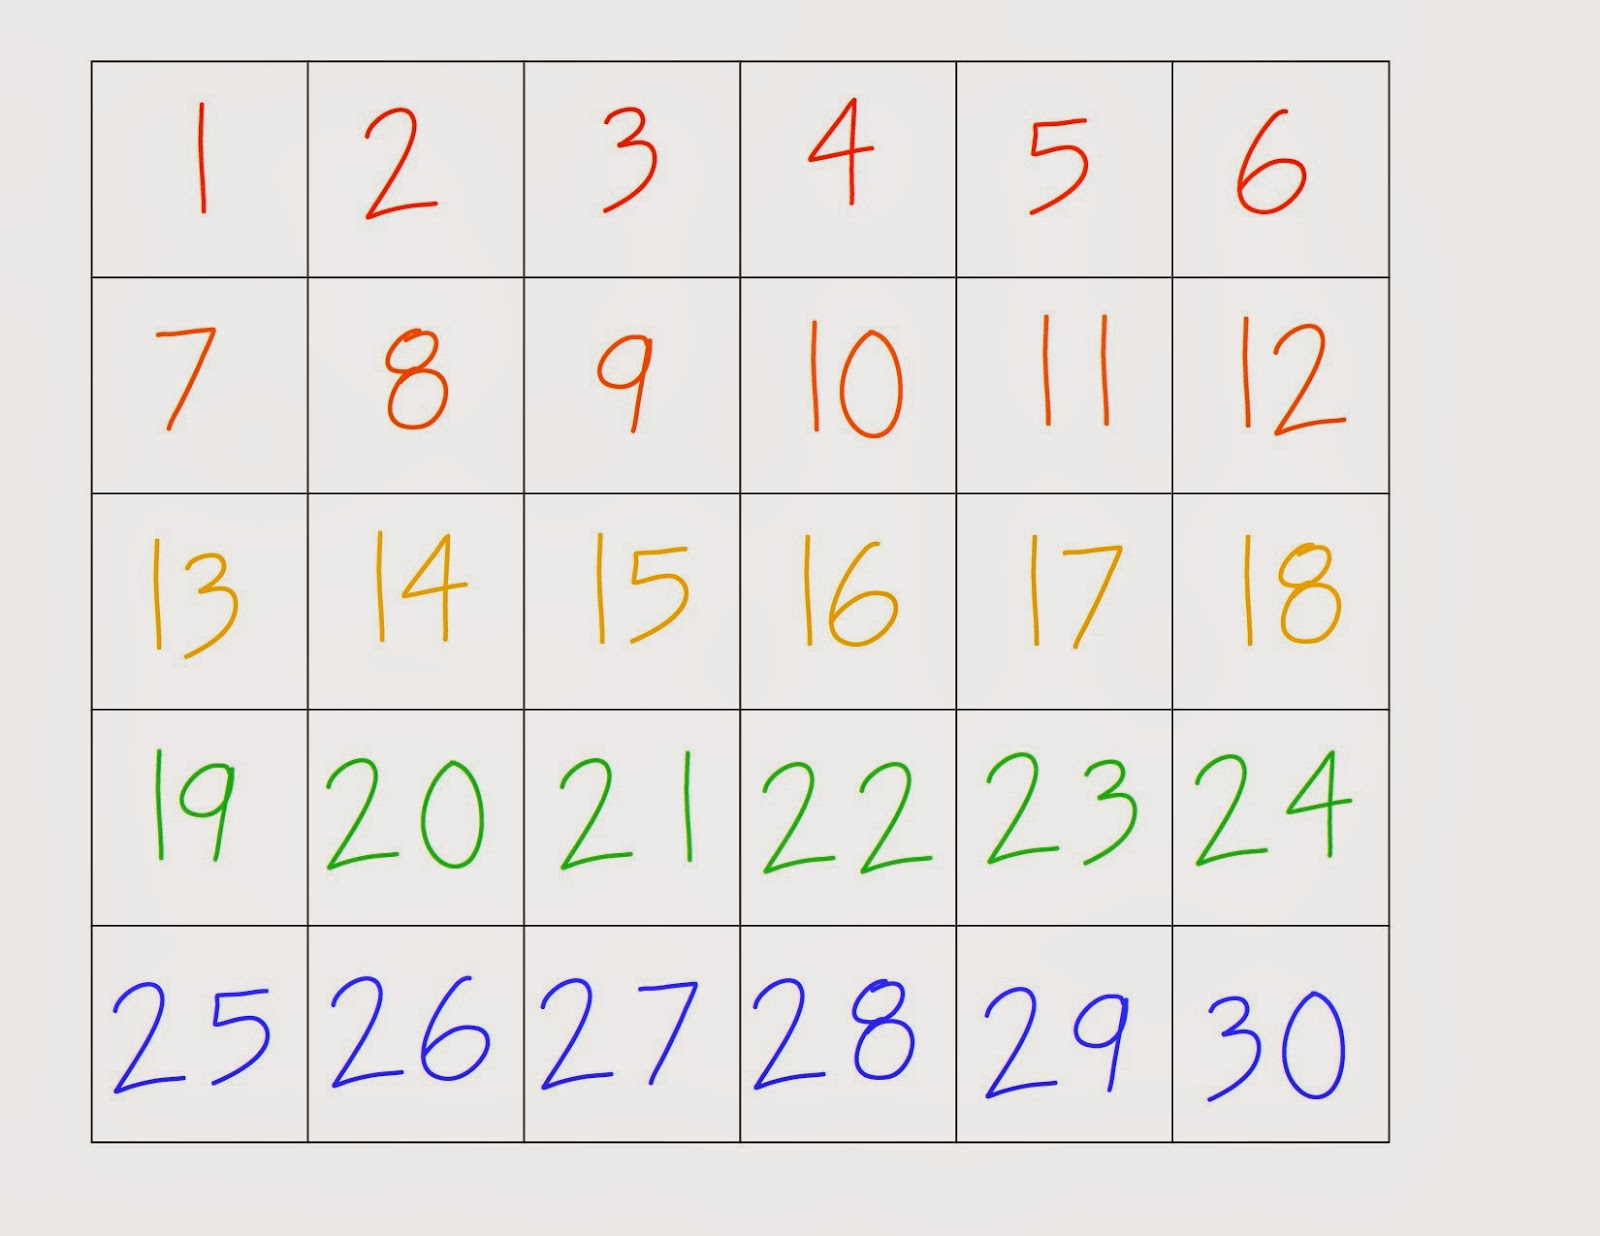 Hd Wallpapers Printable Number Charts 1 30 Yyp.earecom.press pertaining to Printable Multiplication Chart 1-30